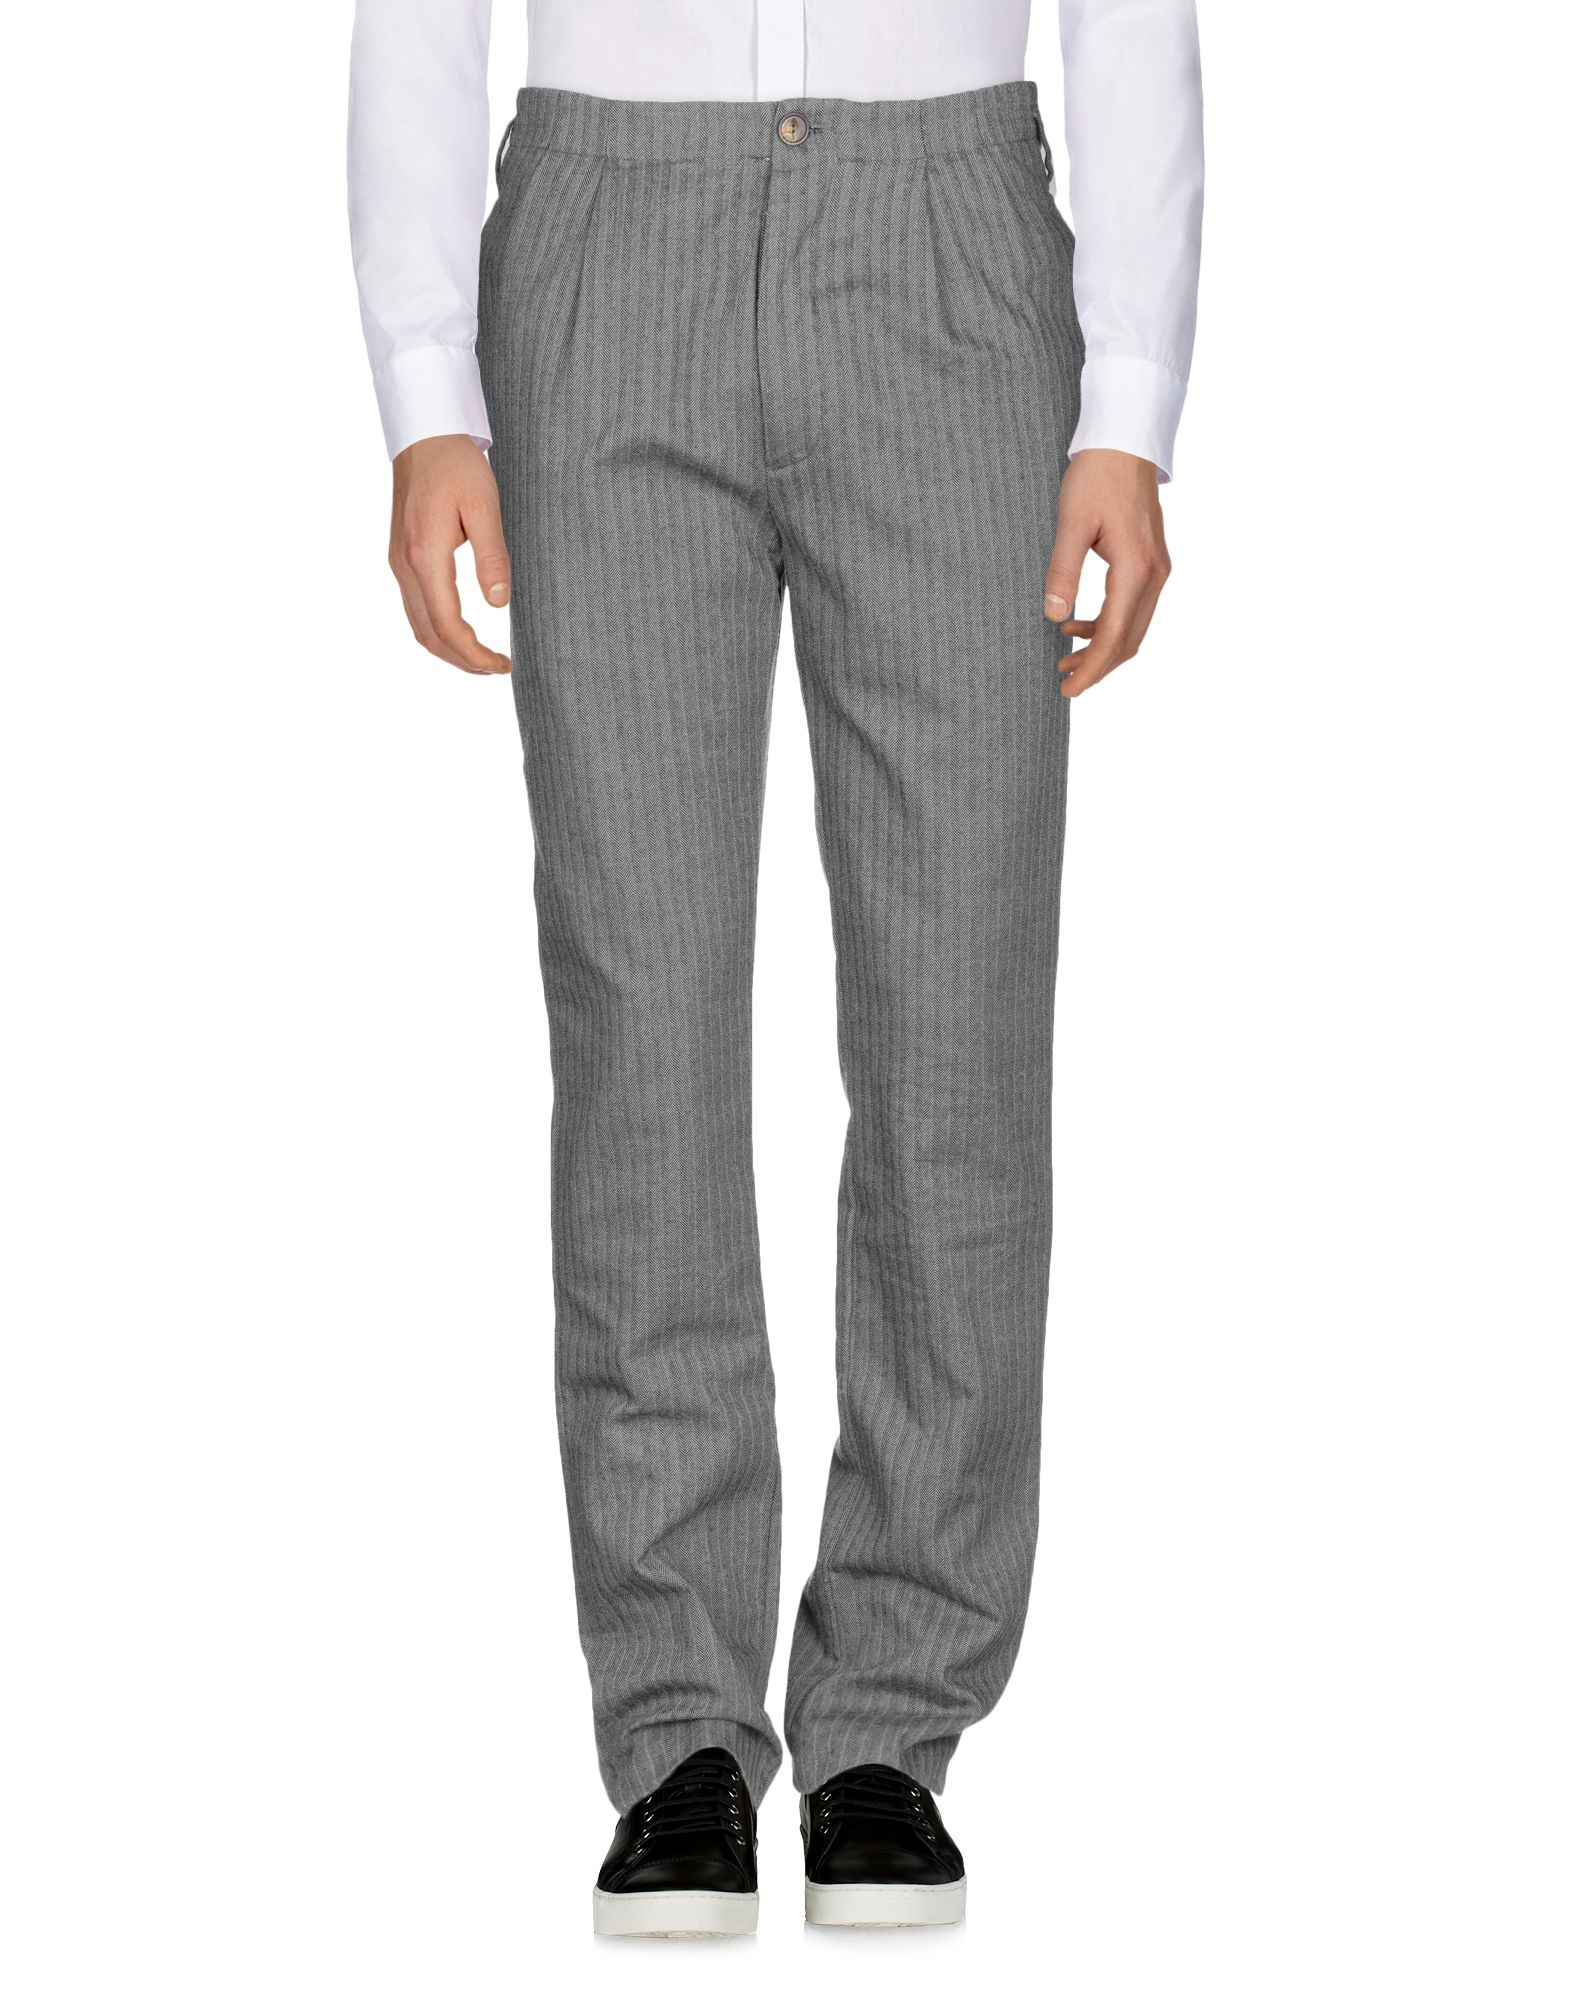 ITINERIS Casual Pants in Grey